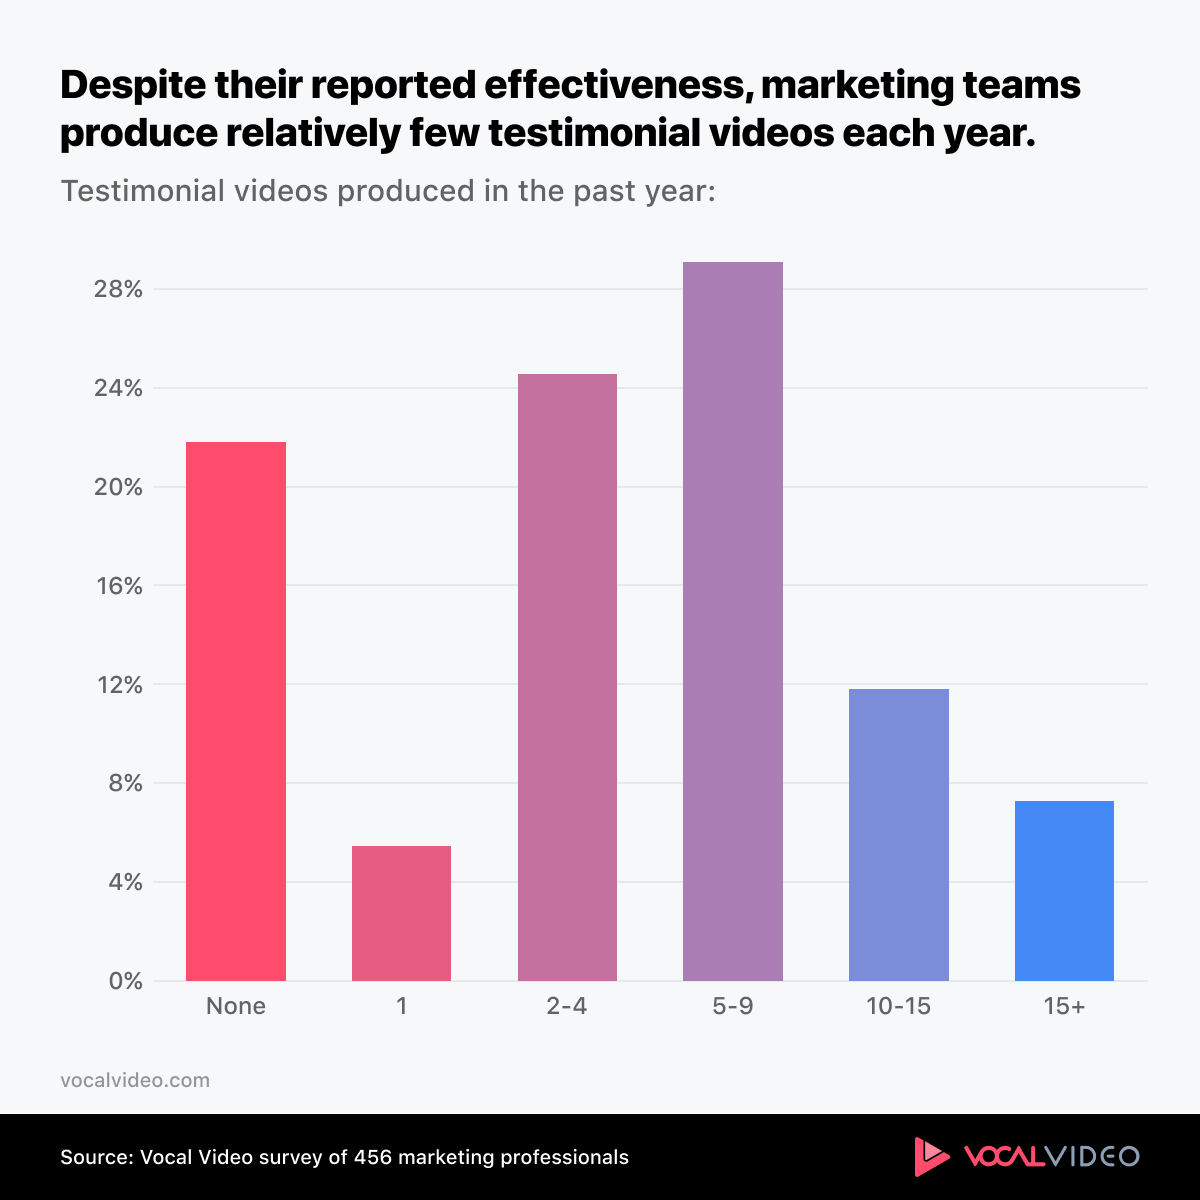 Chart showing that marketing teams produce relatively few testimonial videos each year, despite effectiveness